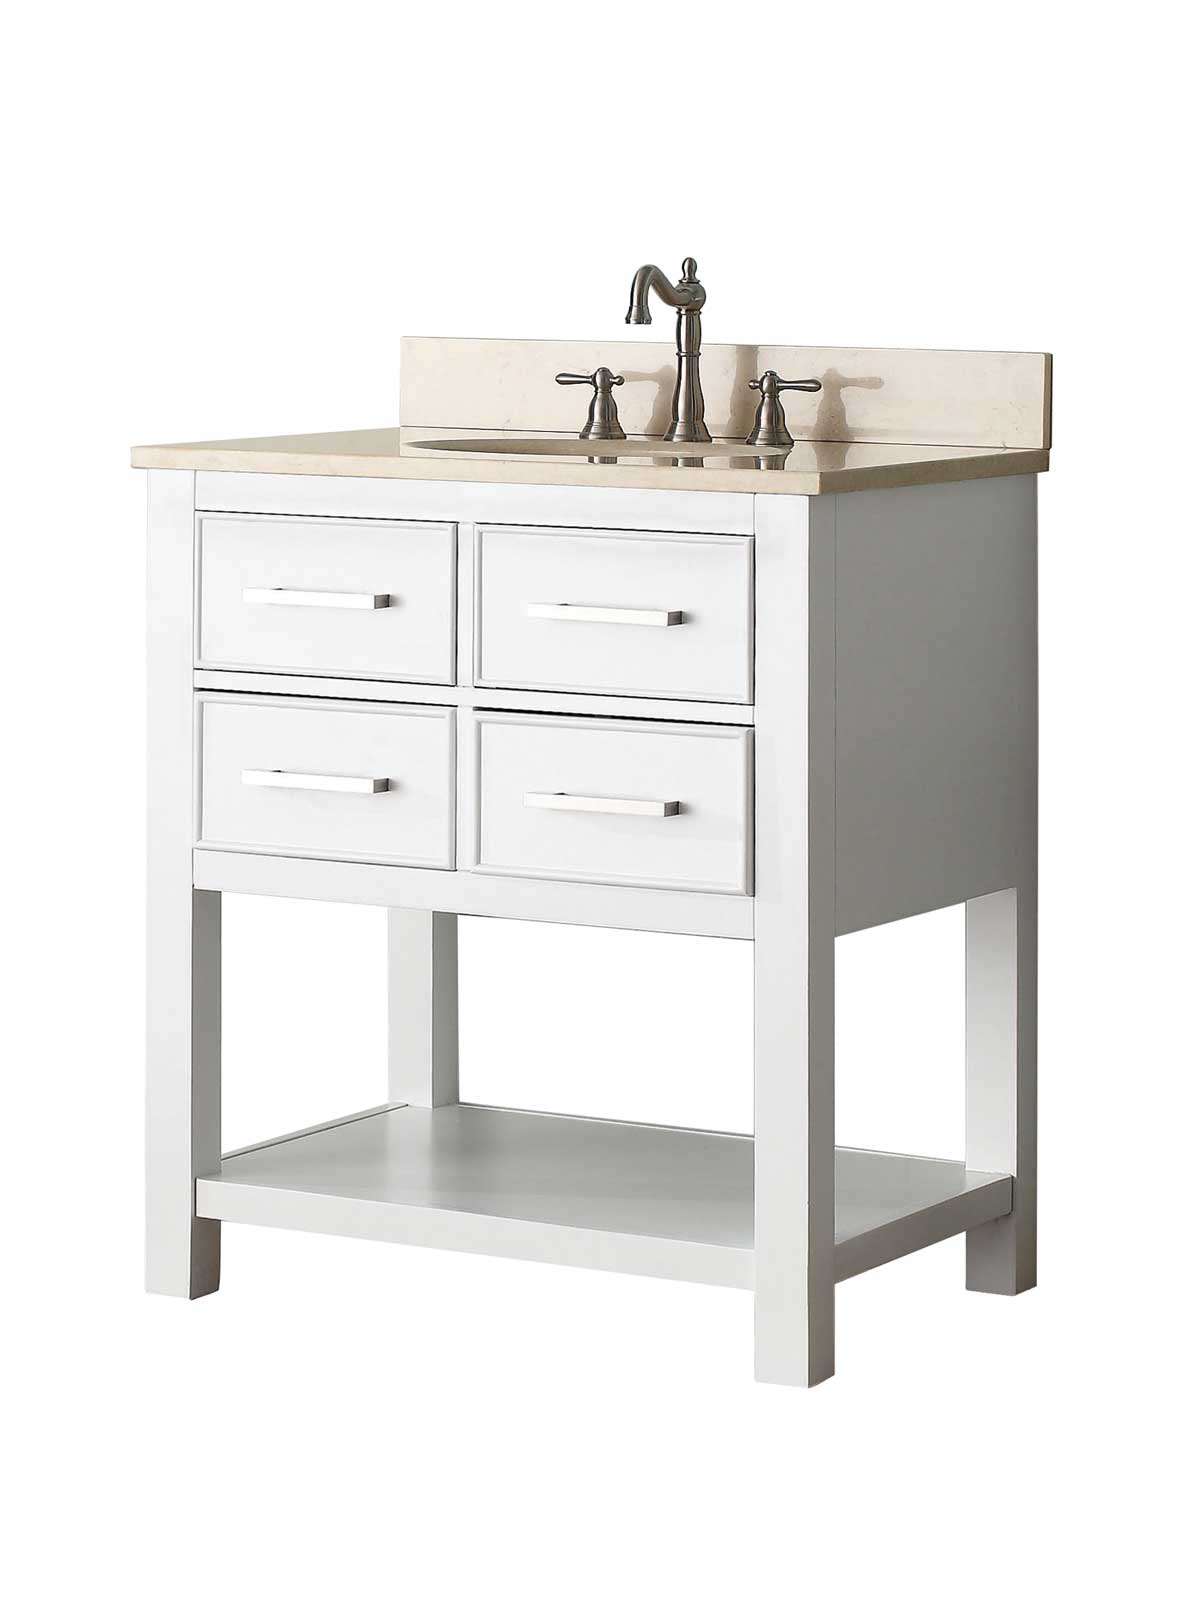 "31"" Begonia Single Bath Vanity - White - Chilled Gray with Galala Beige Marble Top"